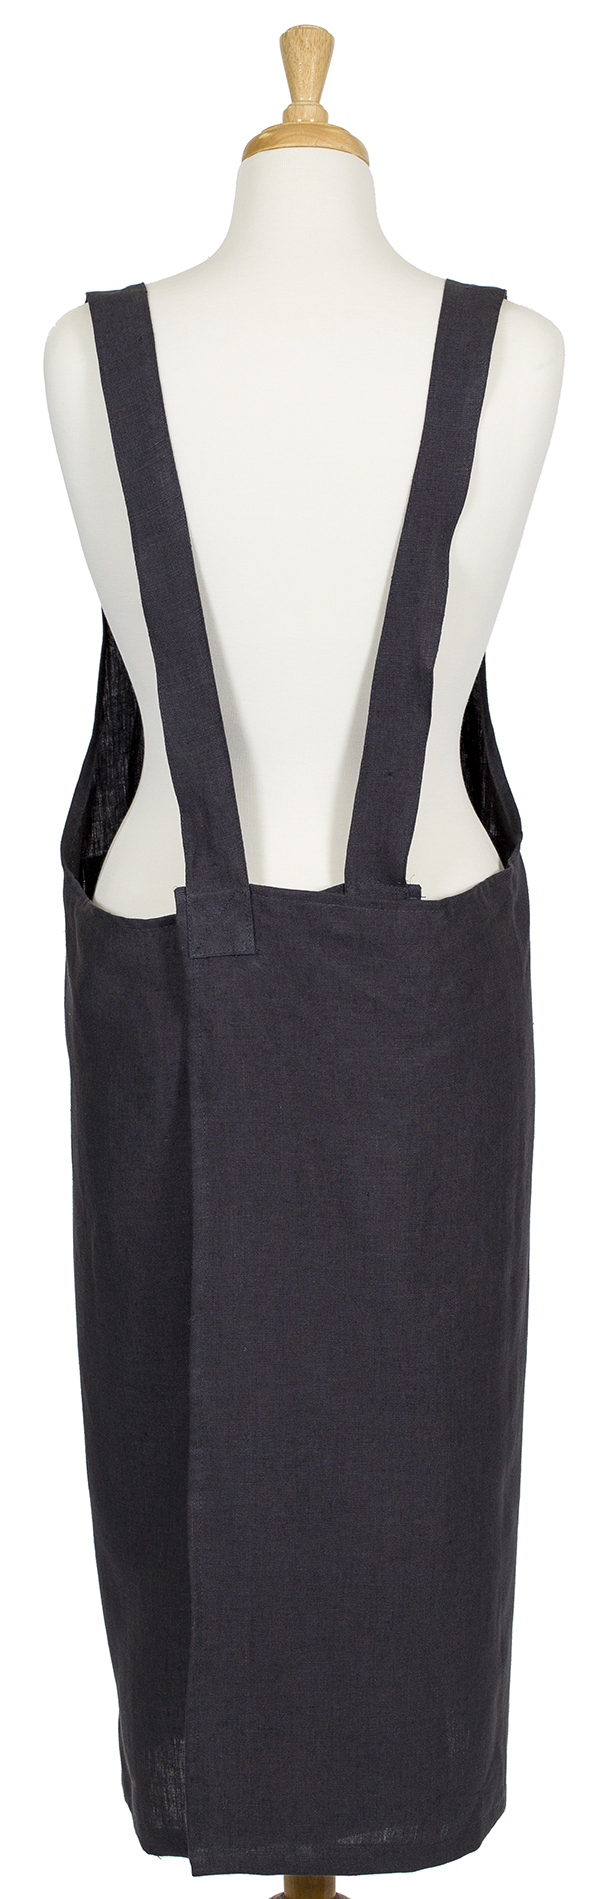 Charcoal Linen Susie Pinafore Apron Back